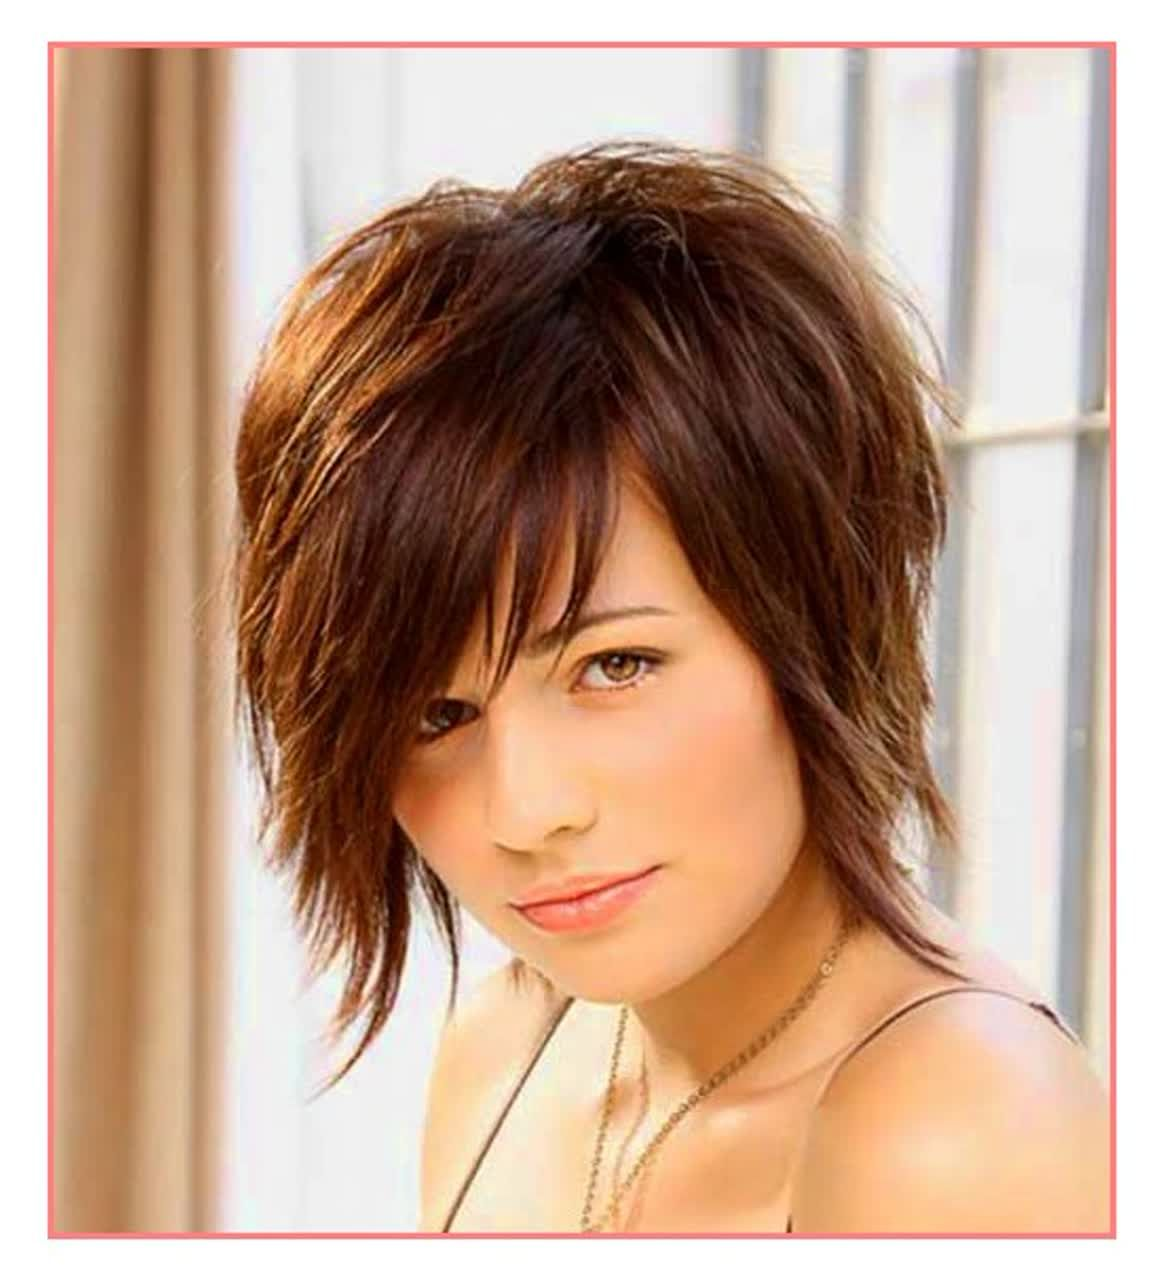 Best mens haircuts for round faces short hairstyle ideas   hairstyles  hairstyles  pinterest